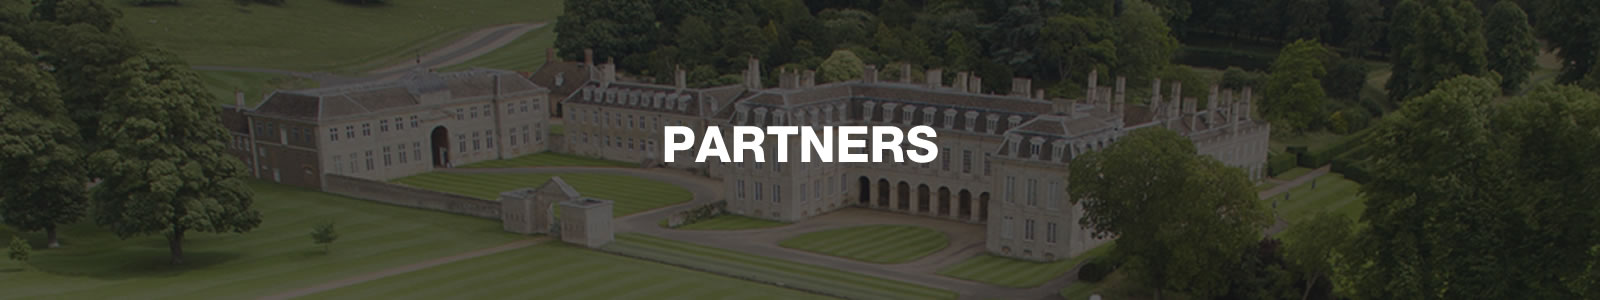 partners banner